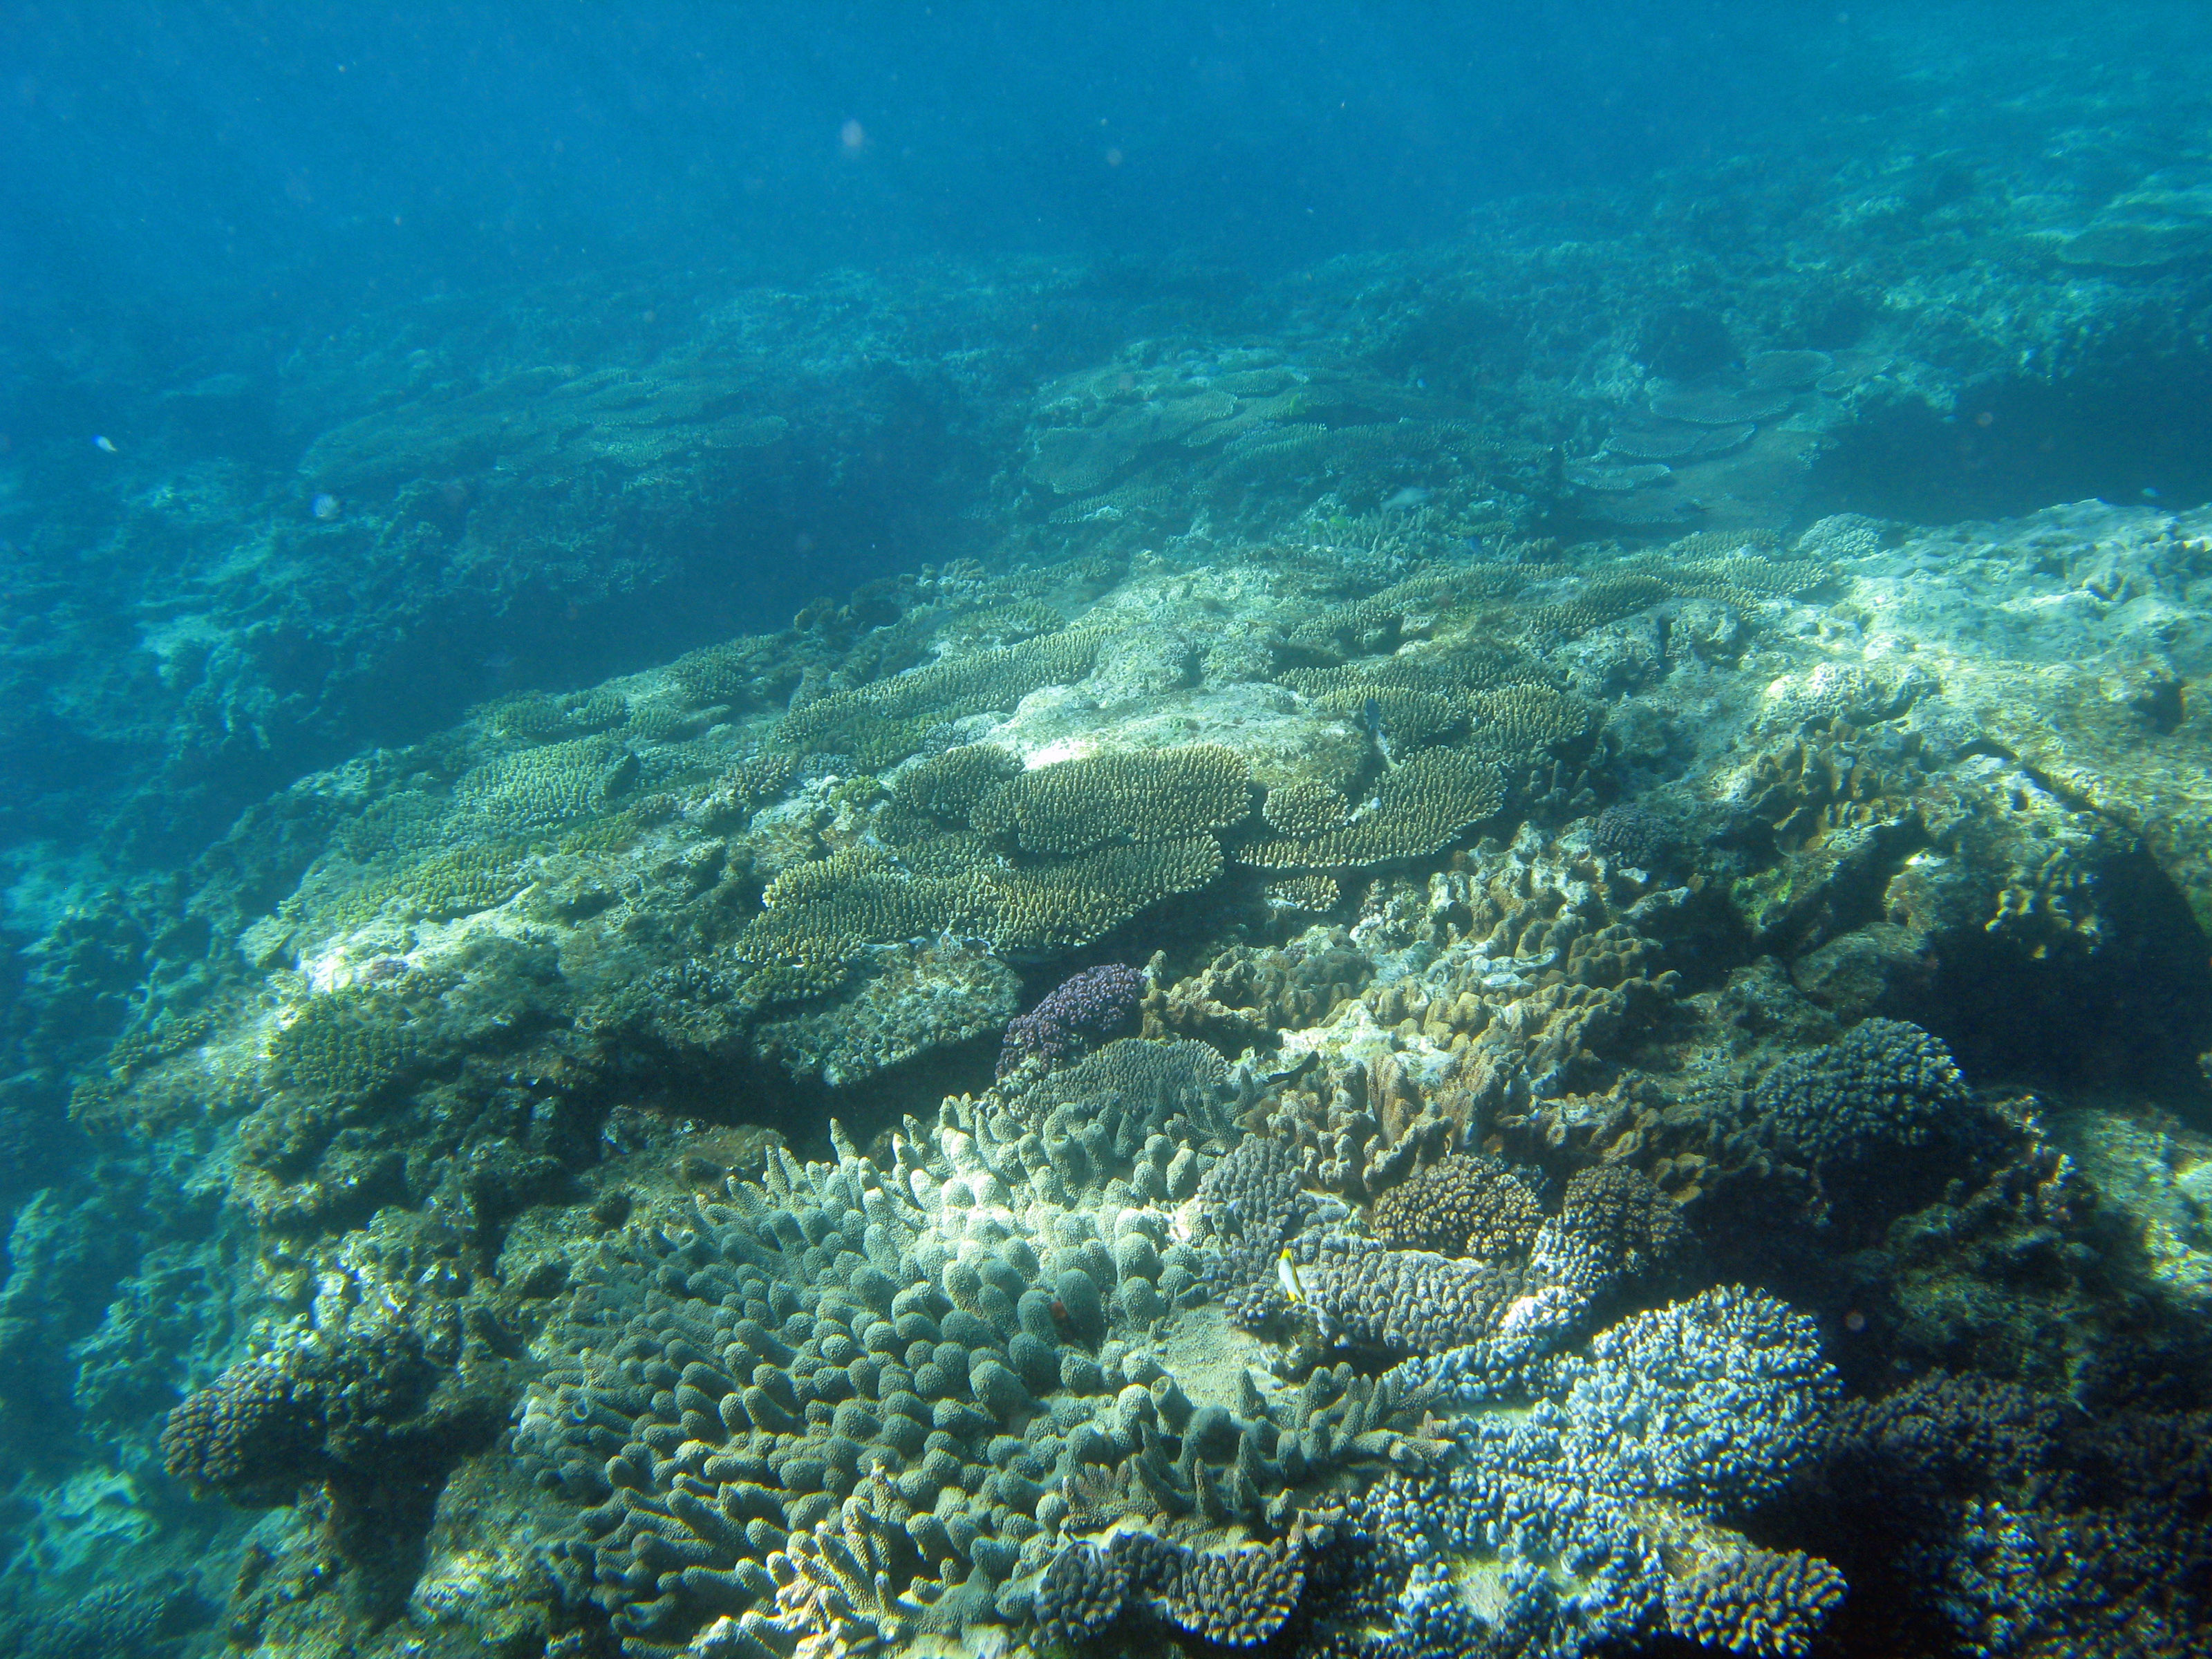 Coral landscape 2392 stockarch free stock photos for Ocean floor description